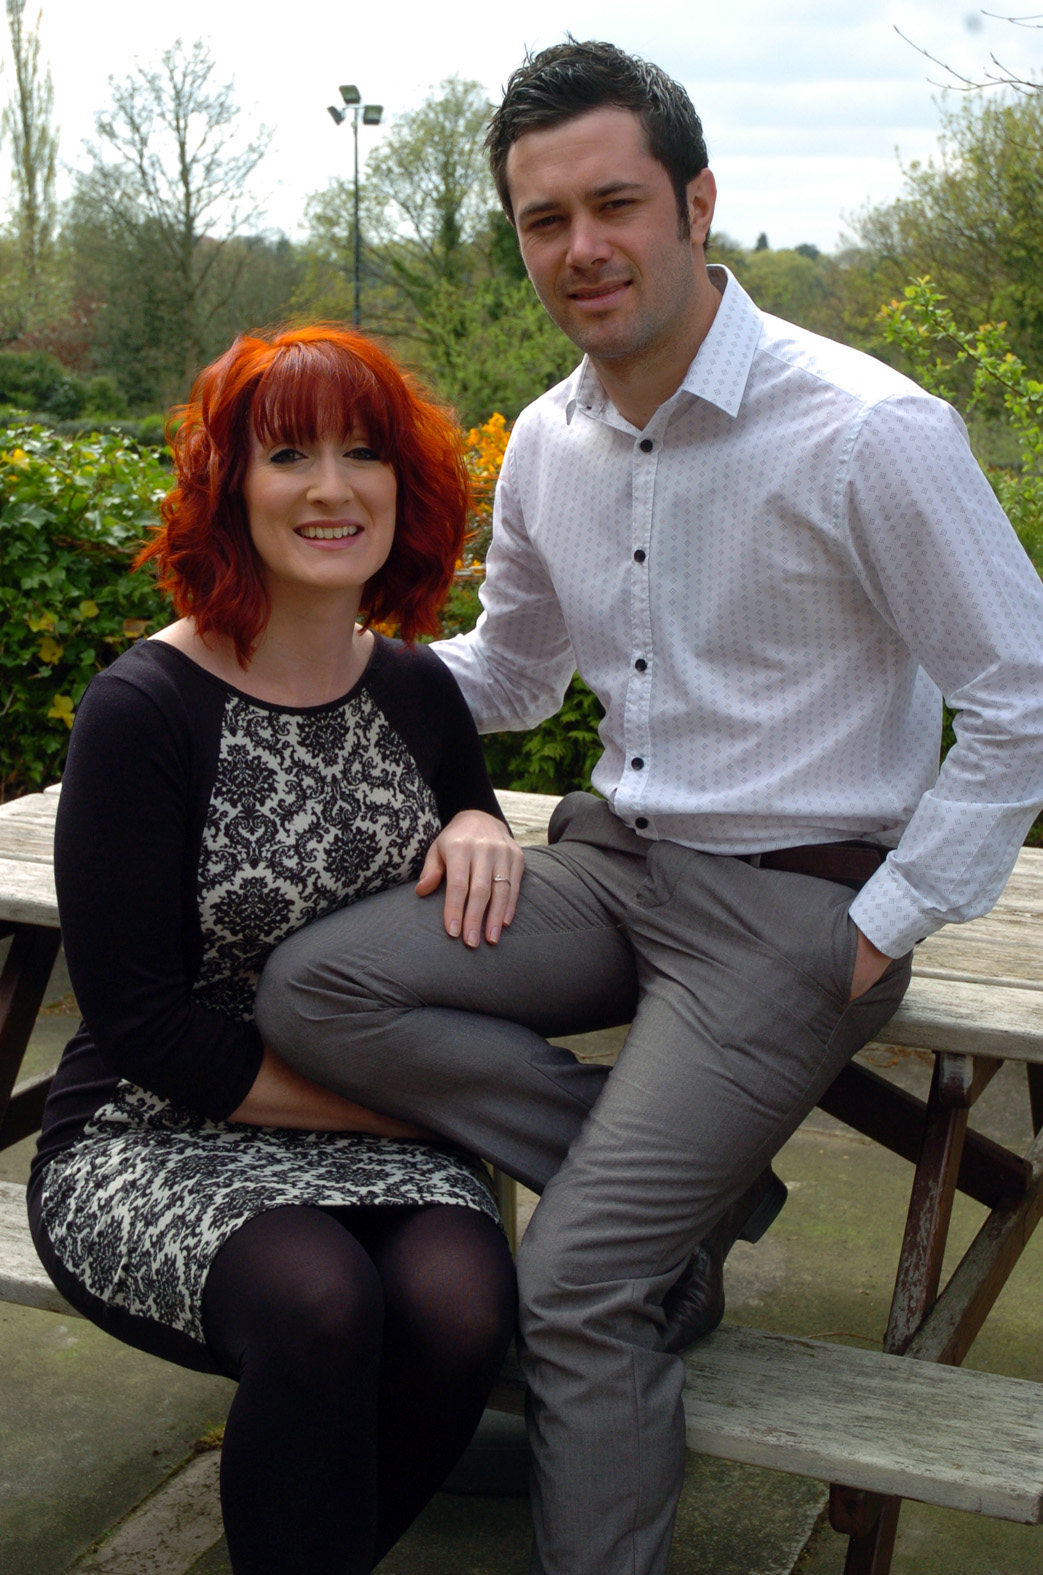 Zoe Naylor and Matt Blythe, the new landlords of The Legh Arms in Knutsford, promise a great atmosphere           M141763